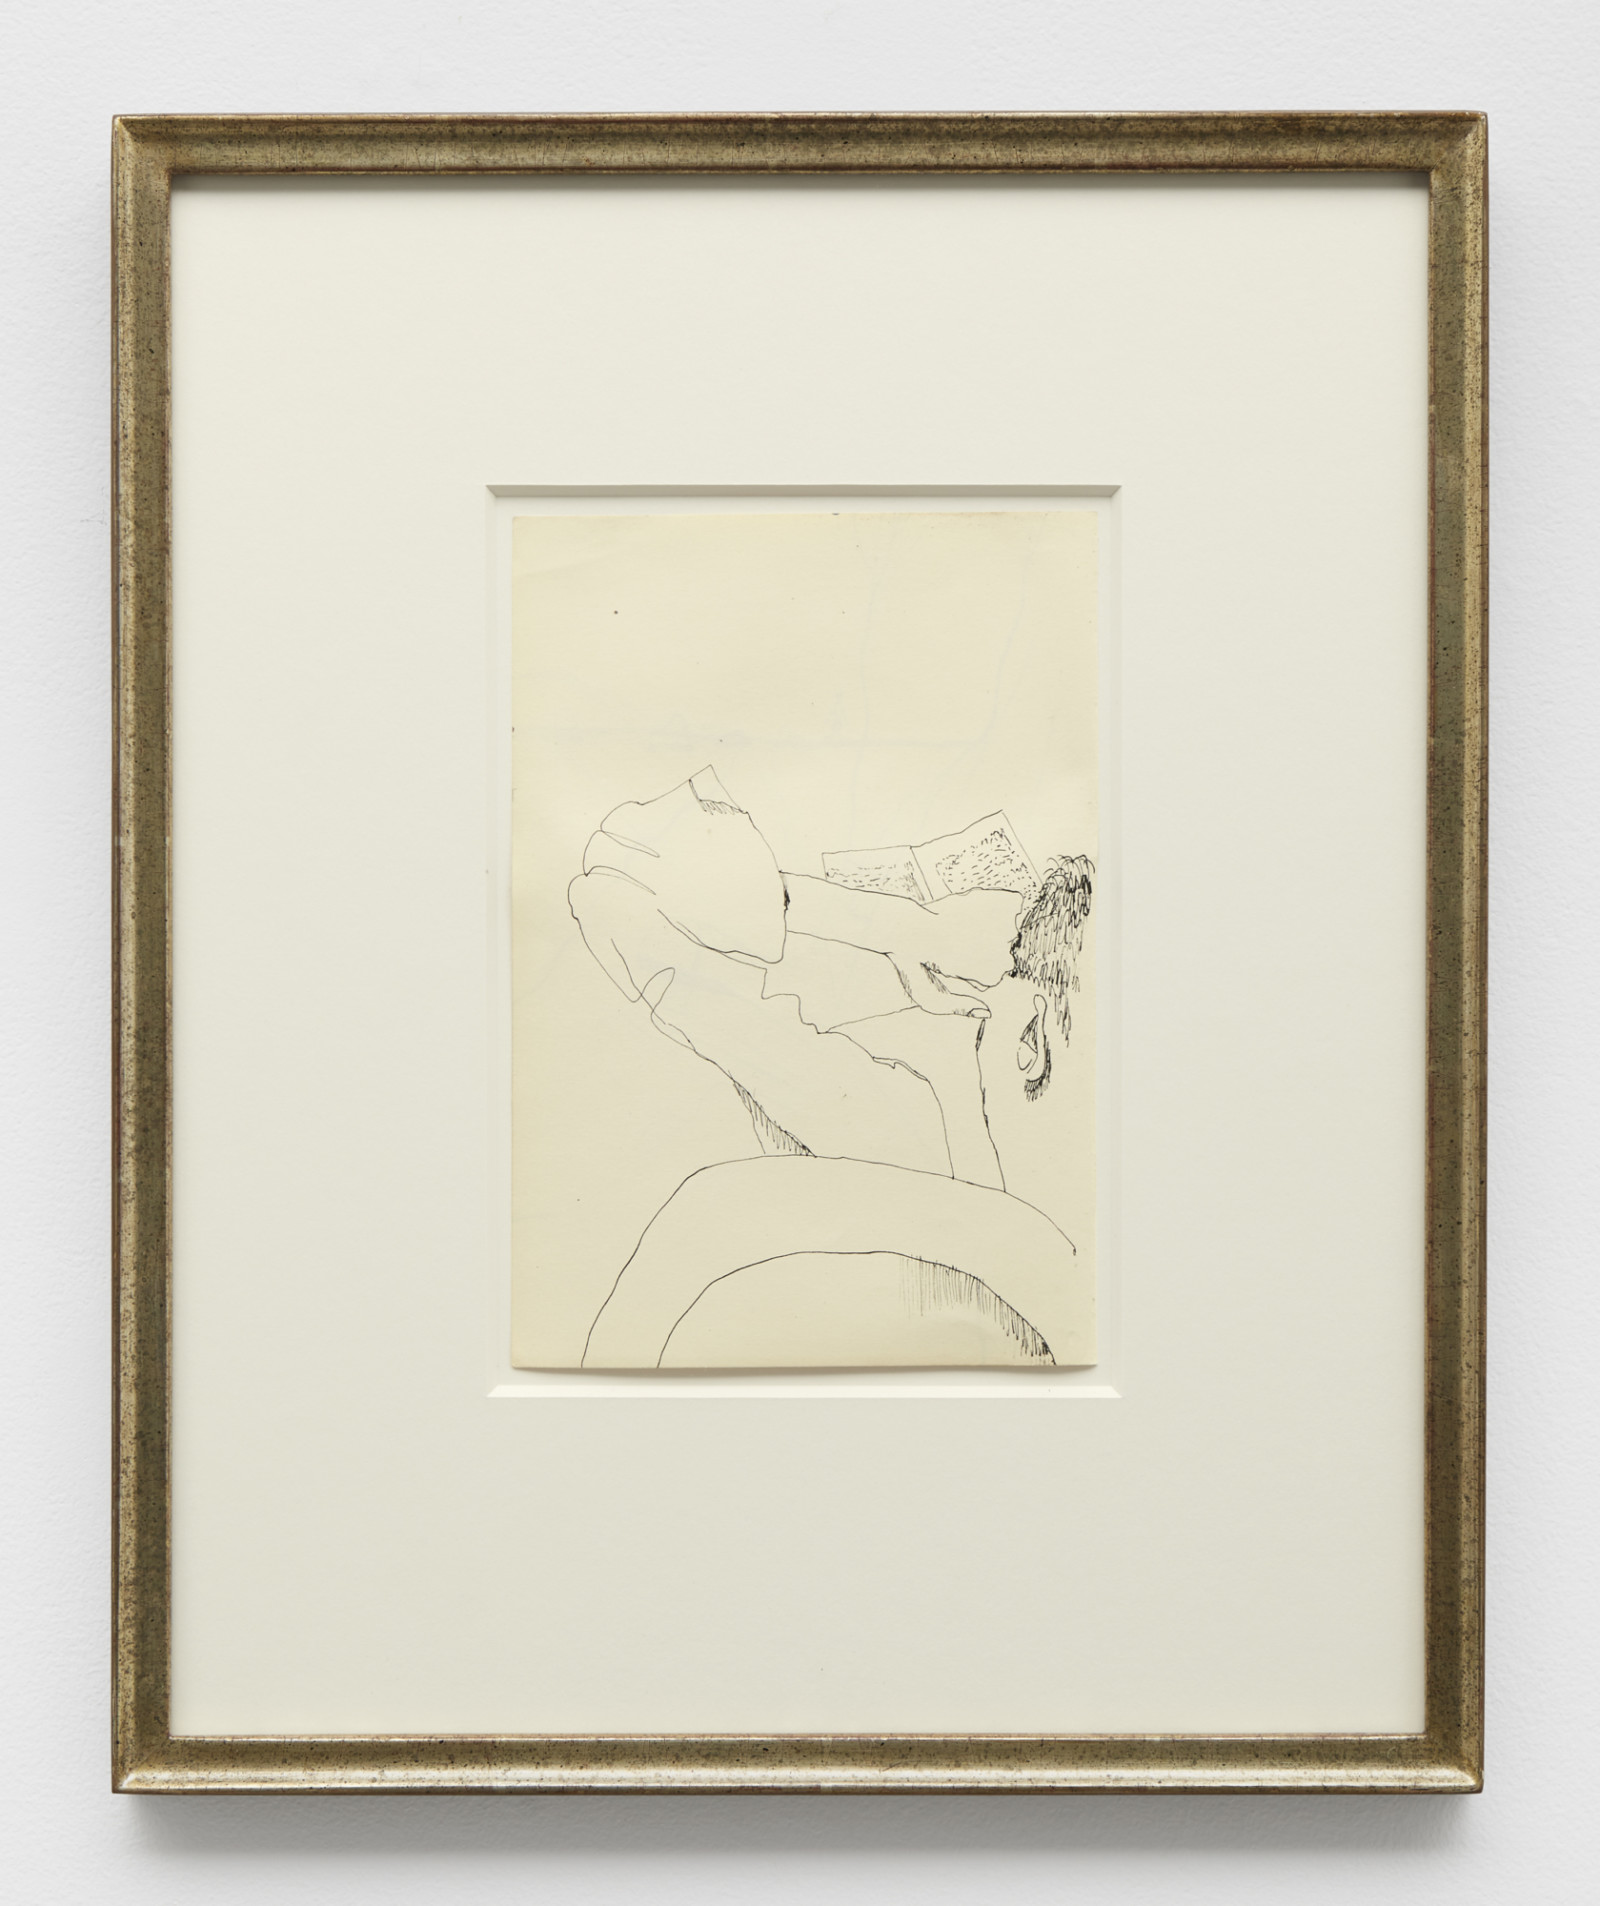 Drawing, dated 1940